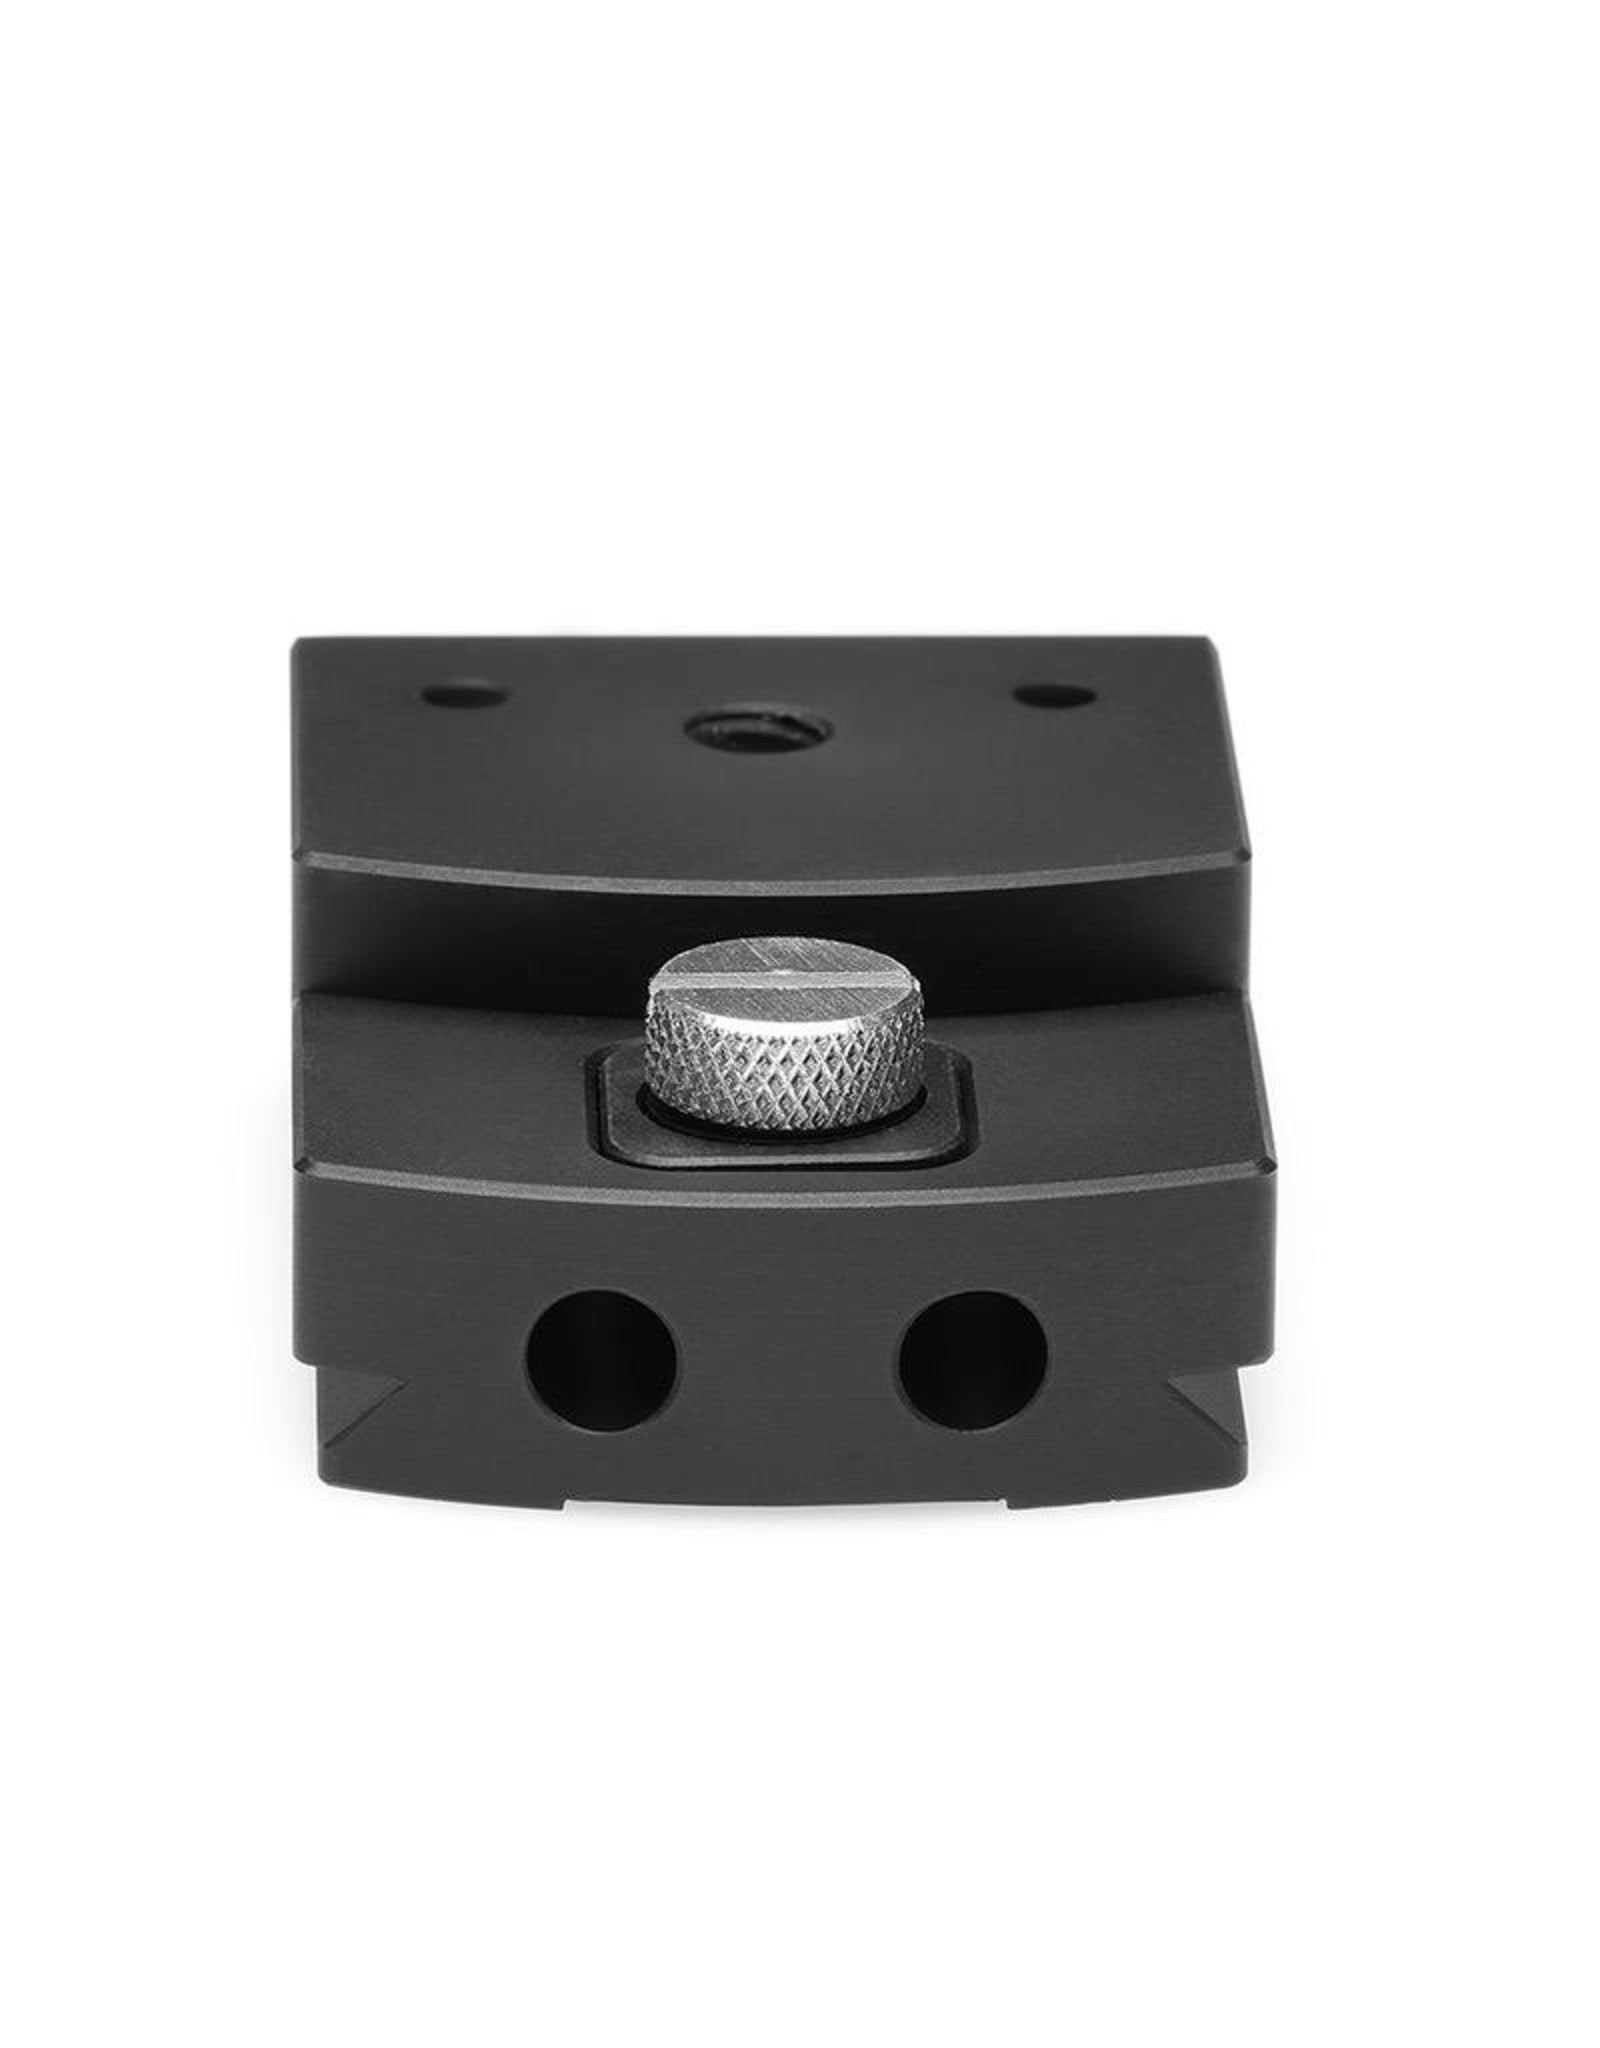 DT Cultural Heritage DT Dovetail Compendium Mount for XT with Thumb Screw